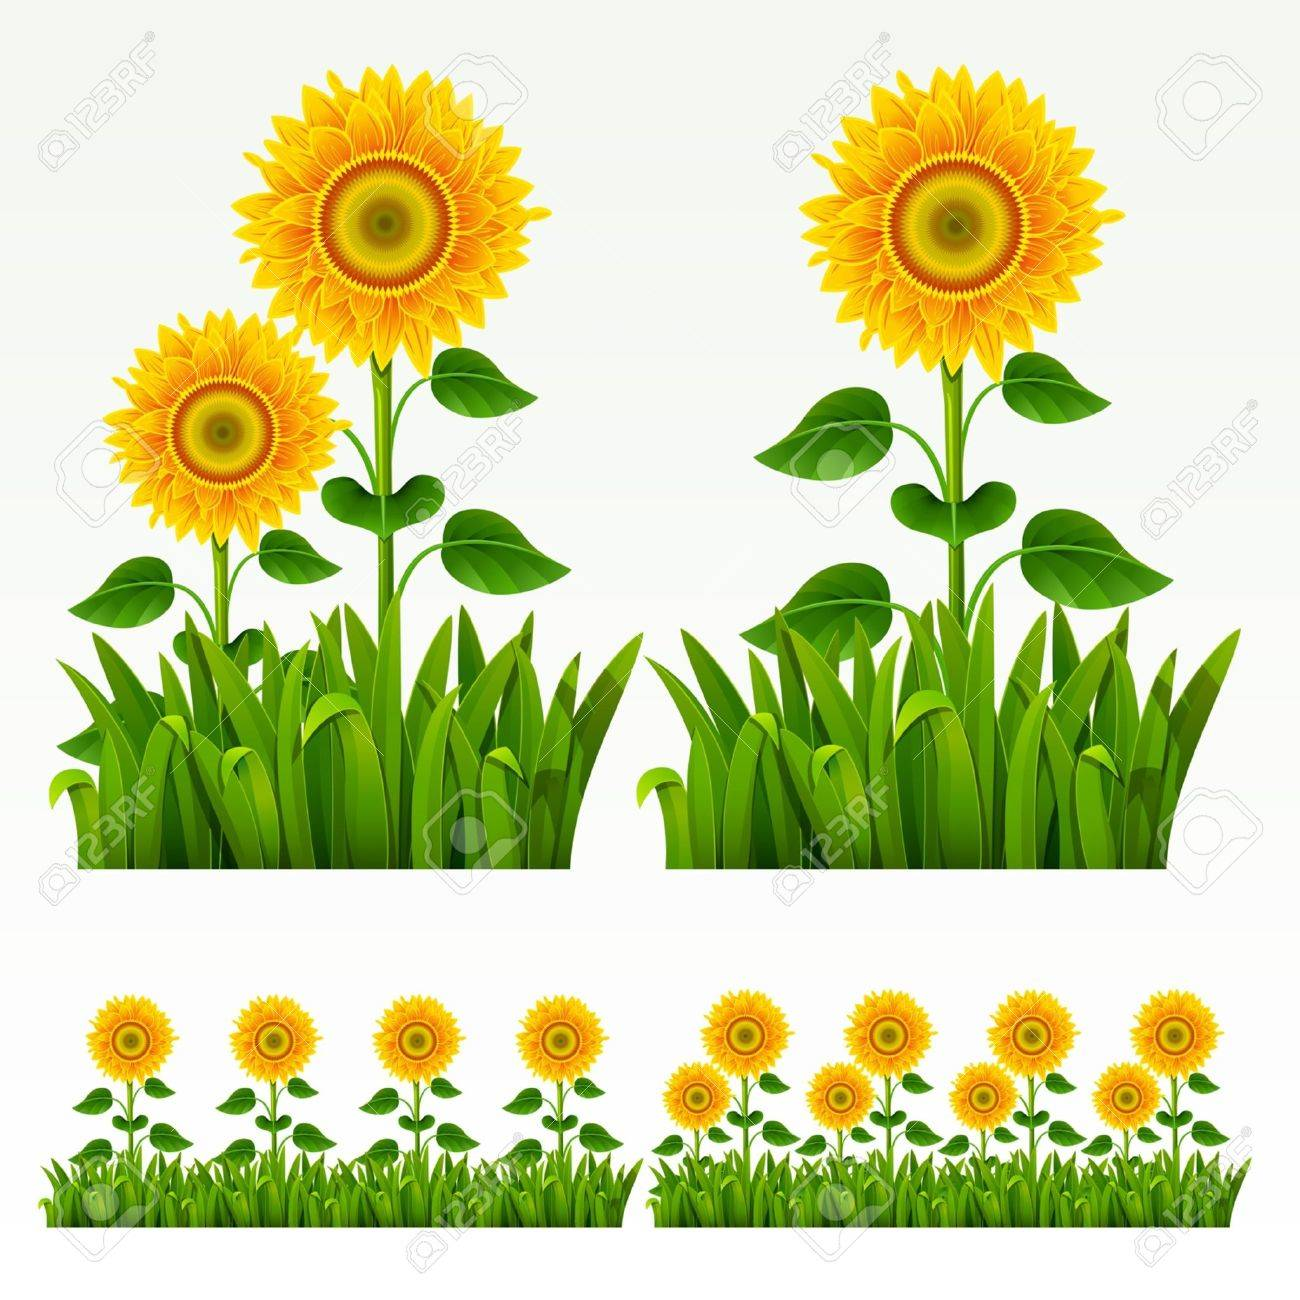 Grass green border with sunflowers. - 9692049